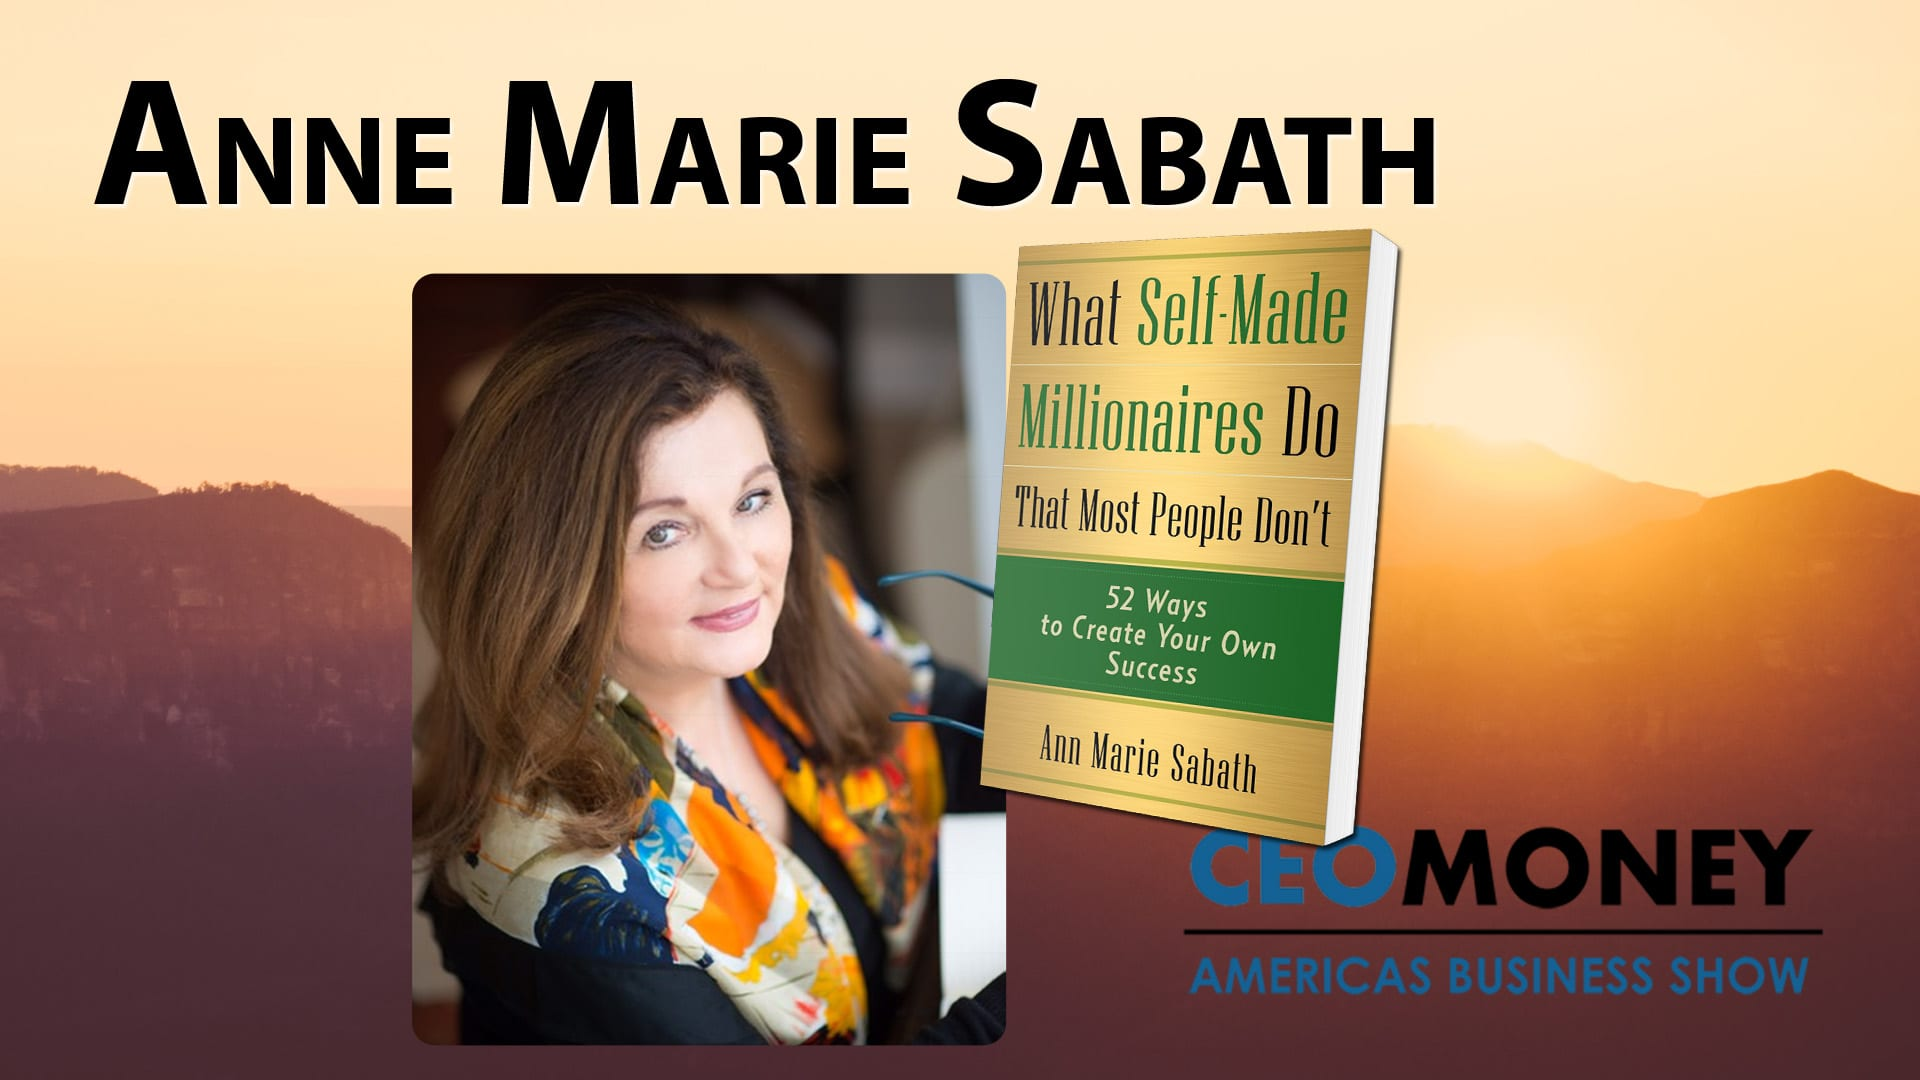 Ann Marie Sabath's book teaches how people can make themselves millionares